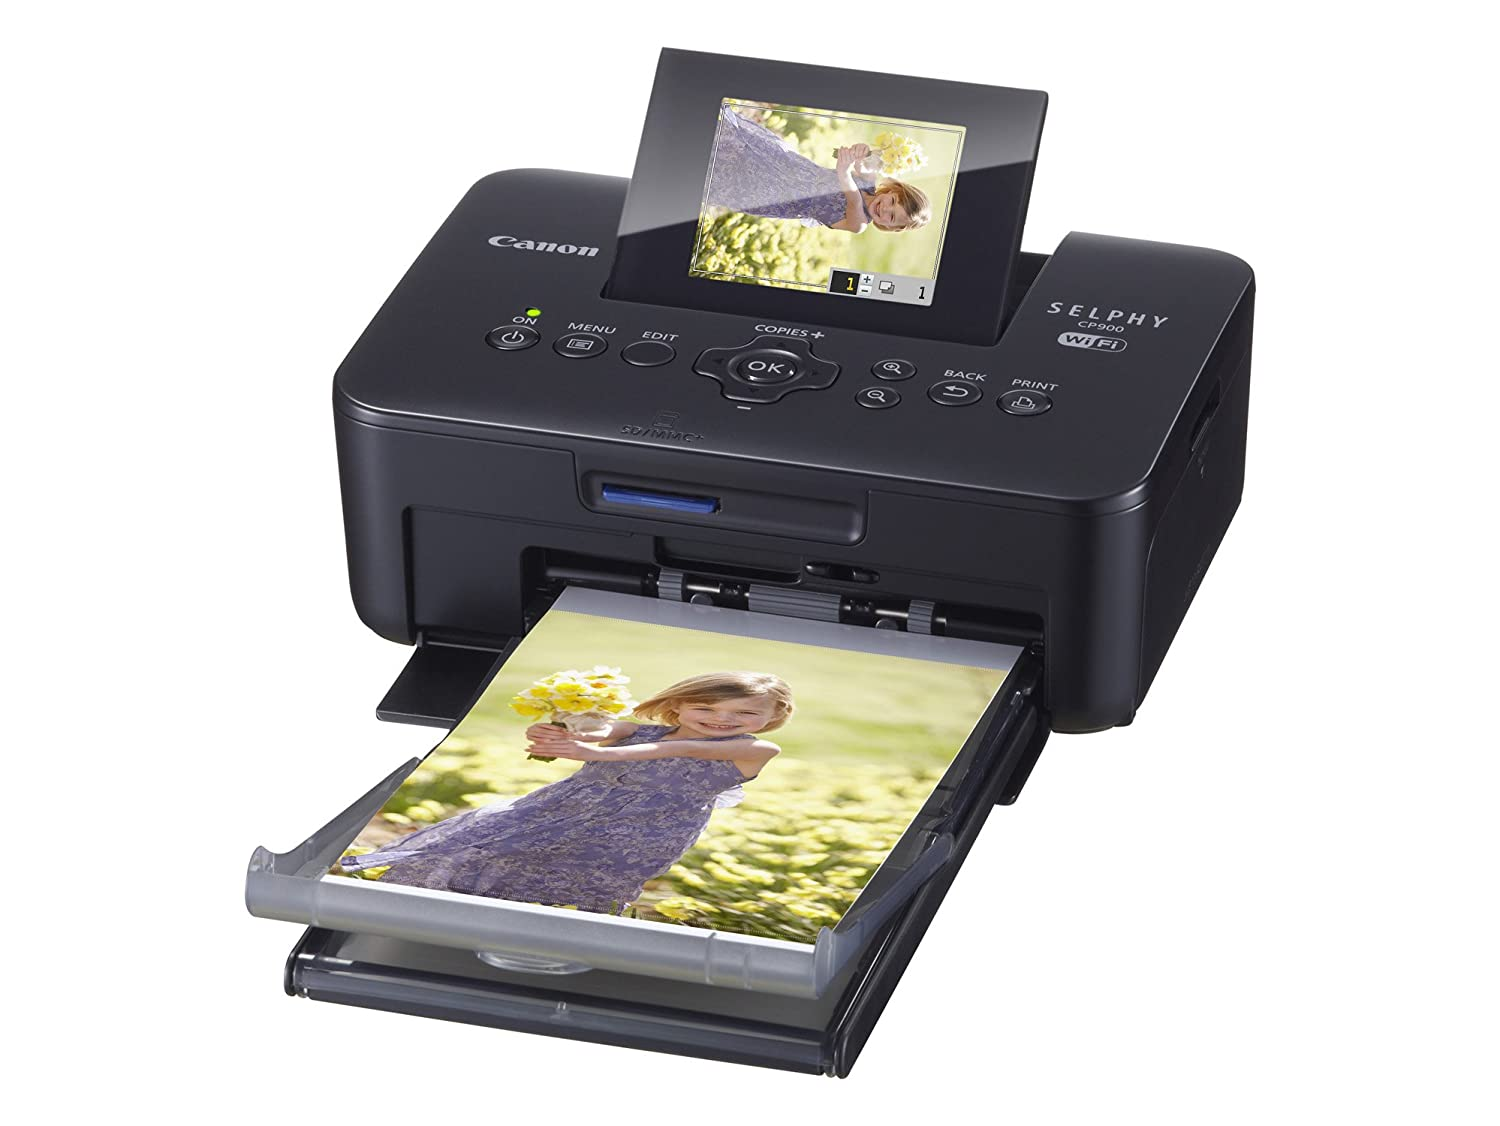 Printers for Pictures at Home-Printers That Can Print Pictures From My Camera, Seekyt